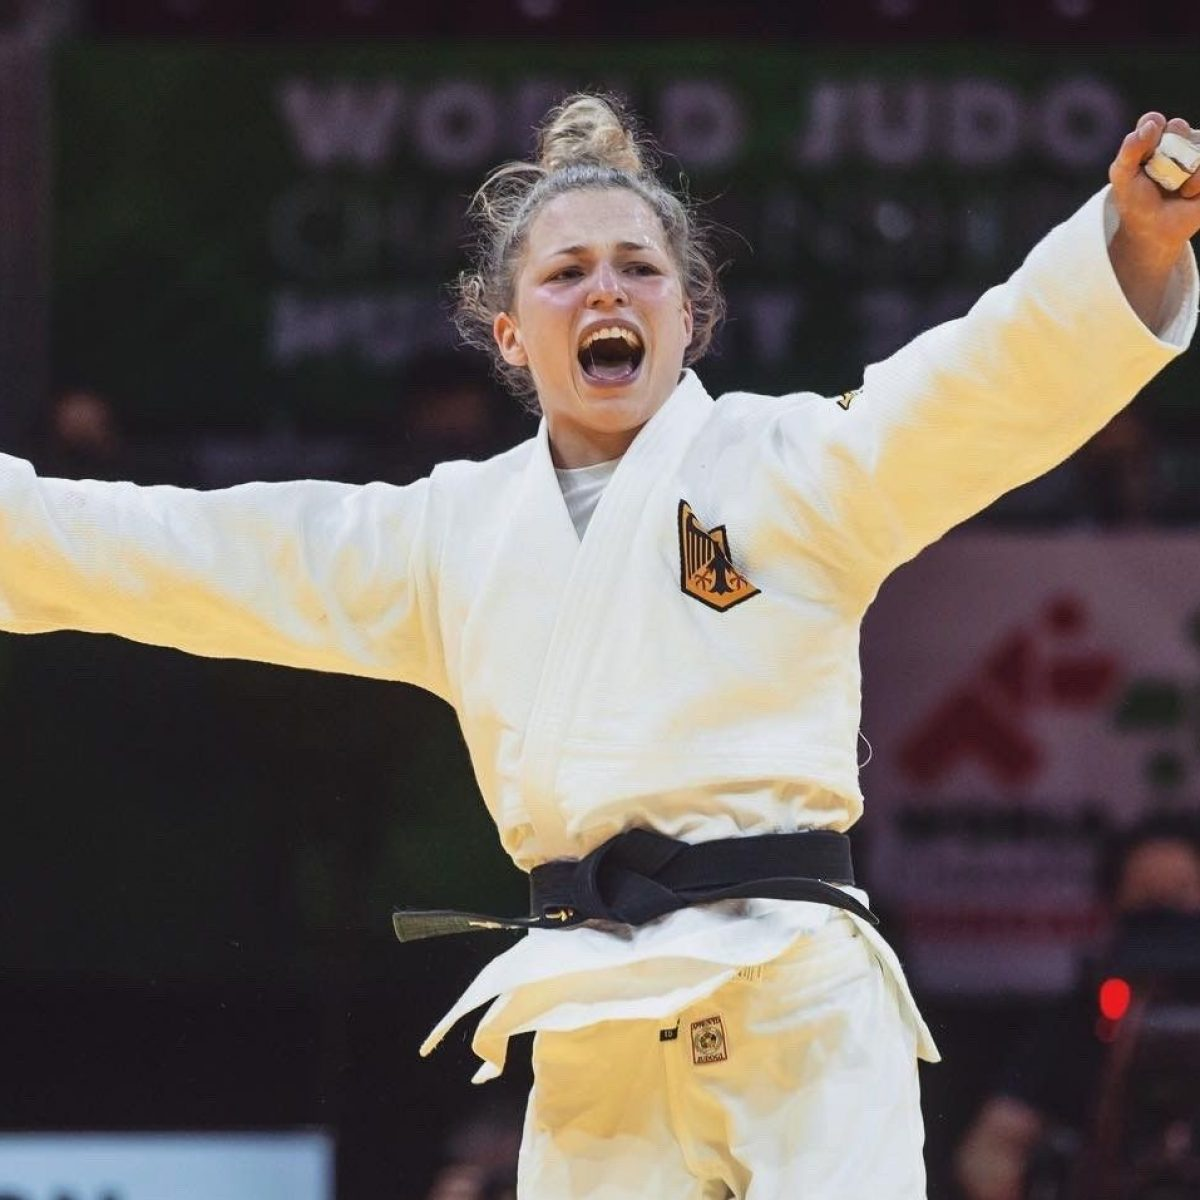 TUM student Theresa Stoll is one of the world's best in Judo. The picture shows her after winning the bronze medal match against the reigning world champion at the World Championships in Budapest 2021 (photo: Di Feliciantonio Emanuele / International Judo Federation).